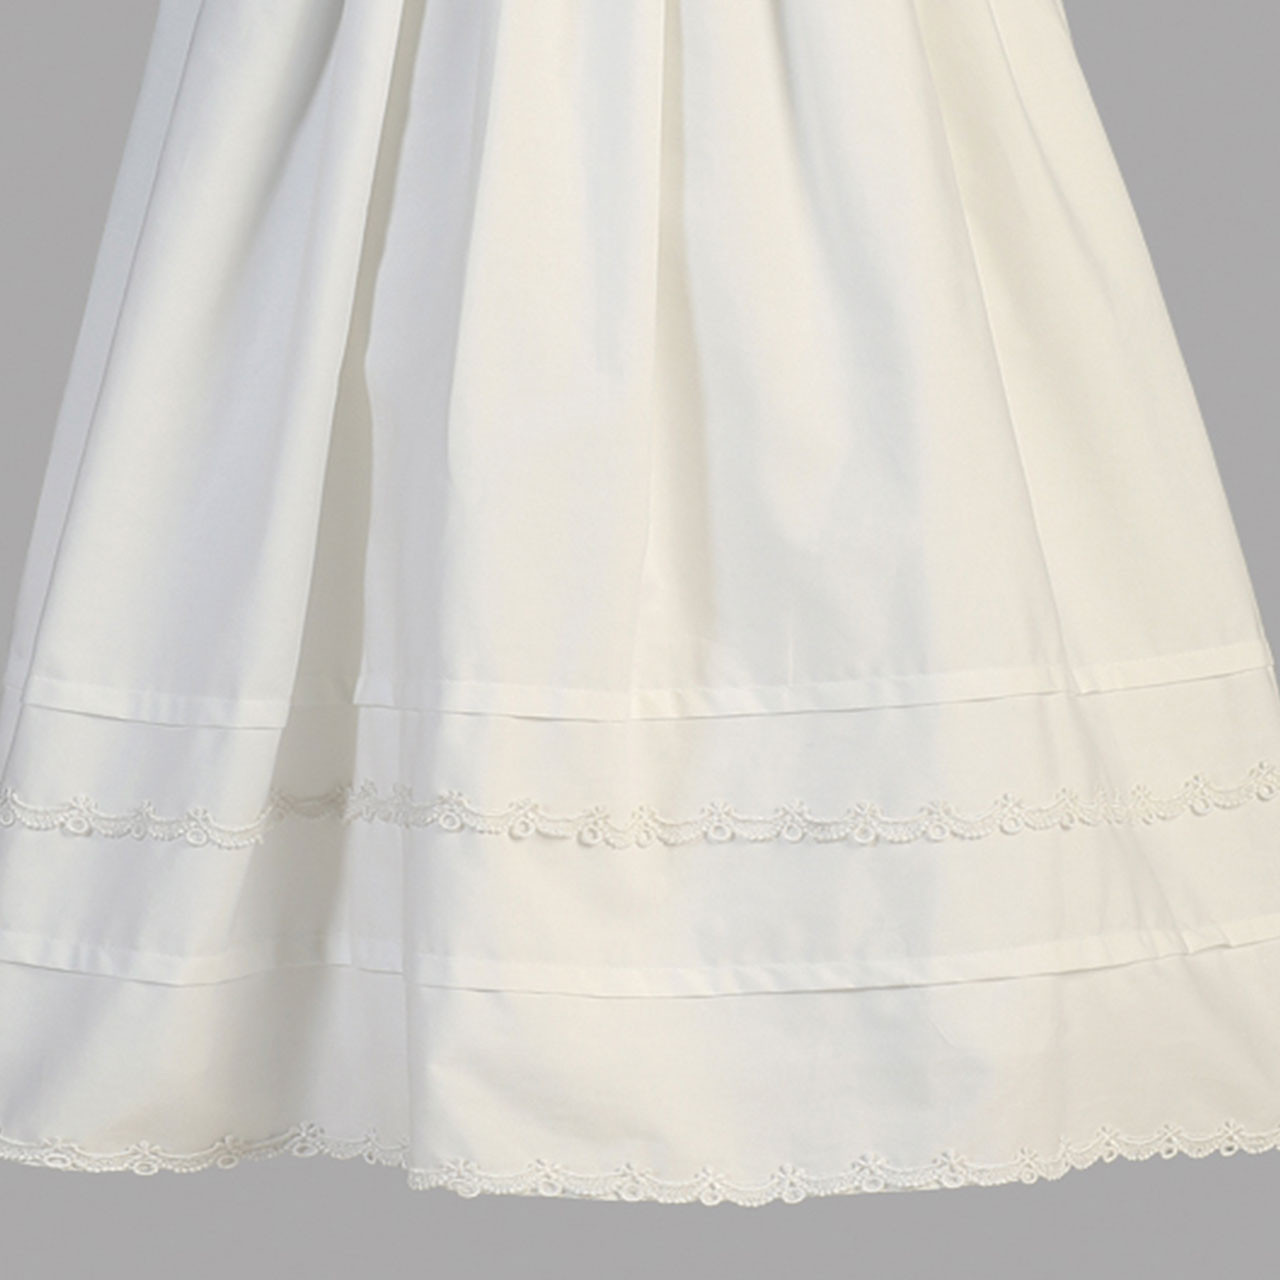 Detail of Embellished lower hem of Marie Cotton Christening Gown